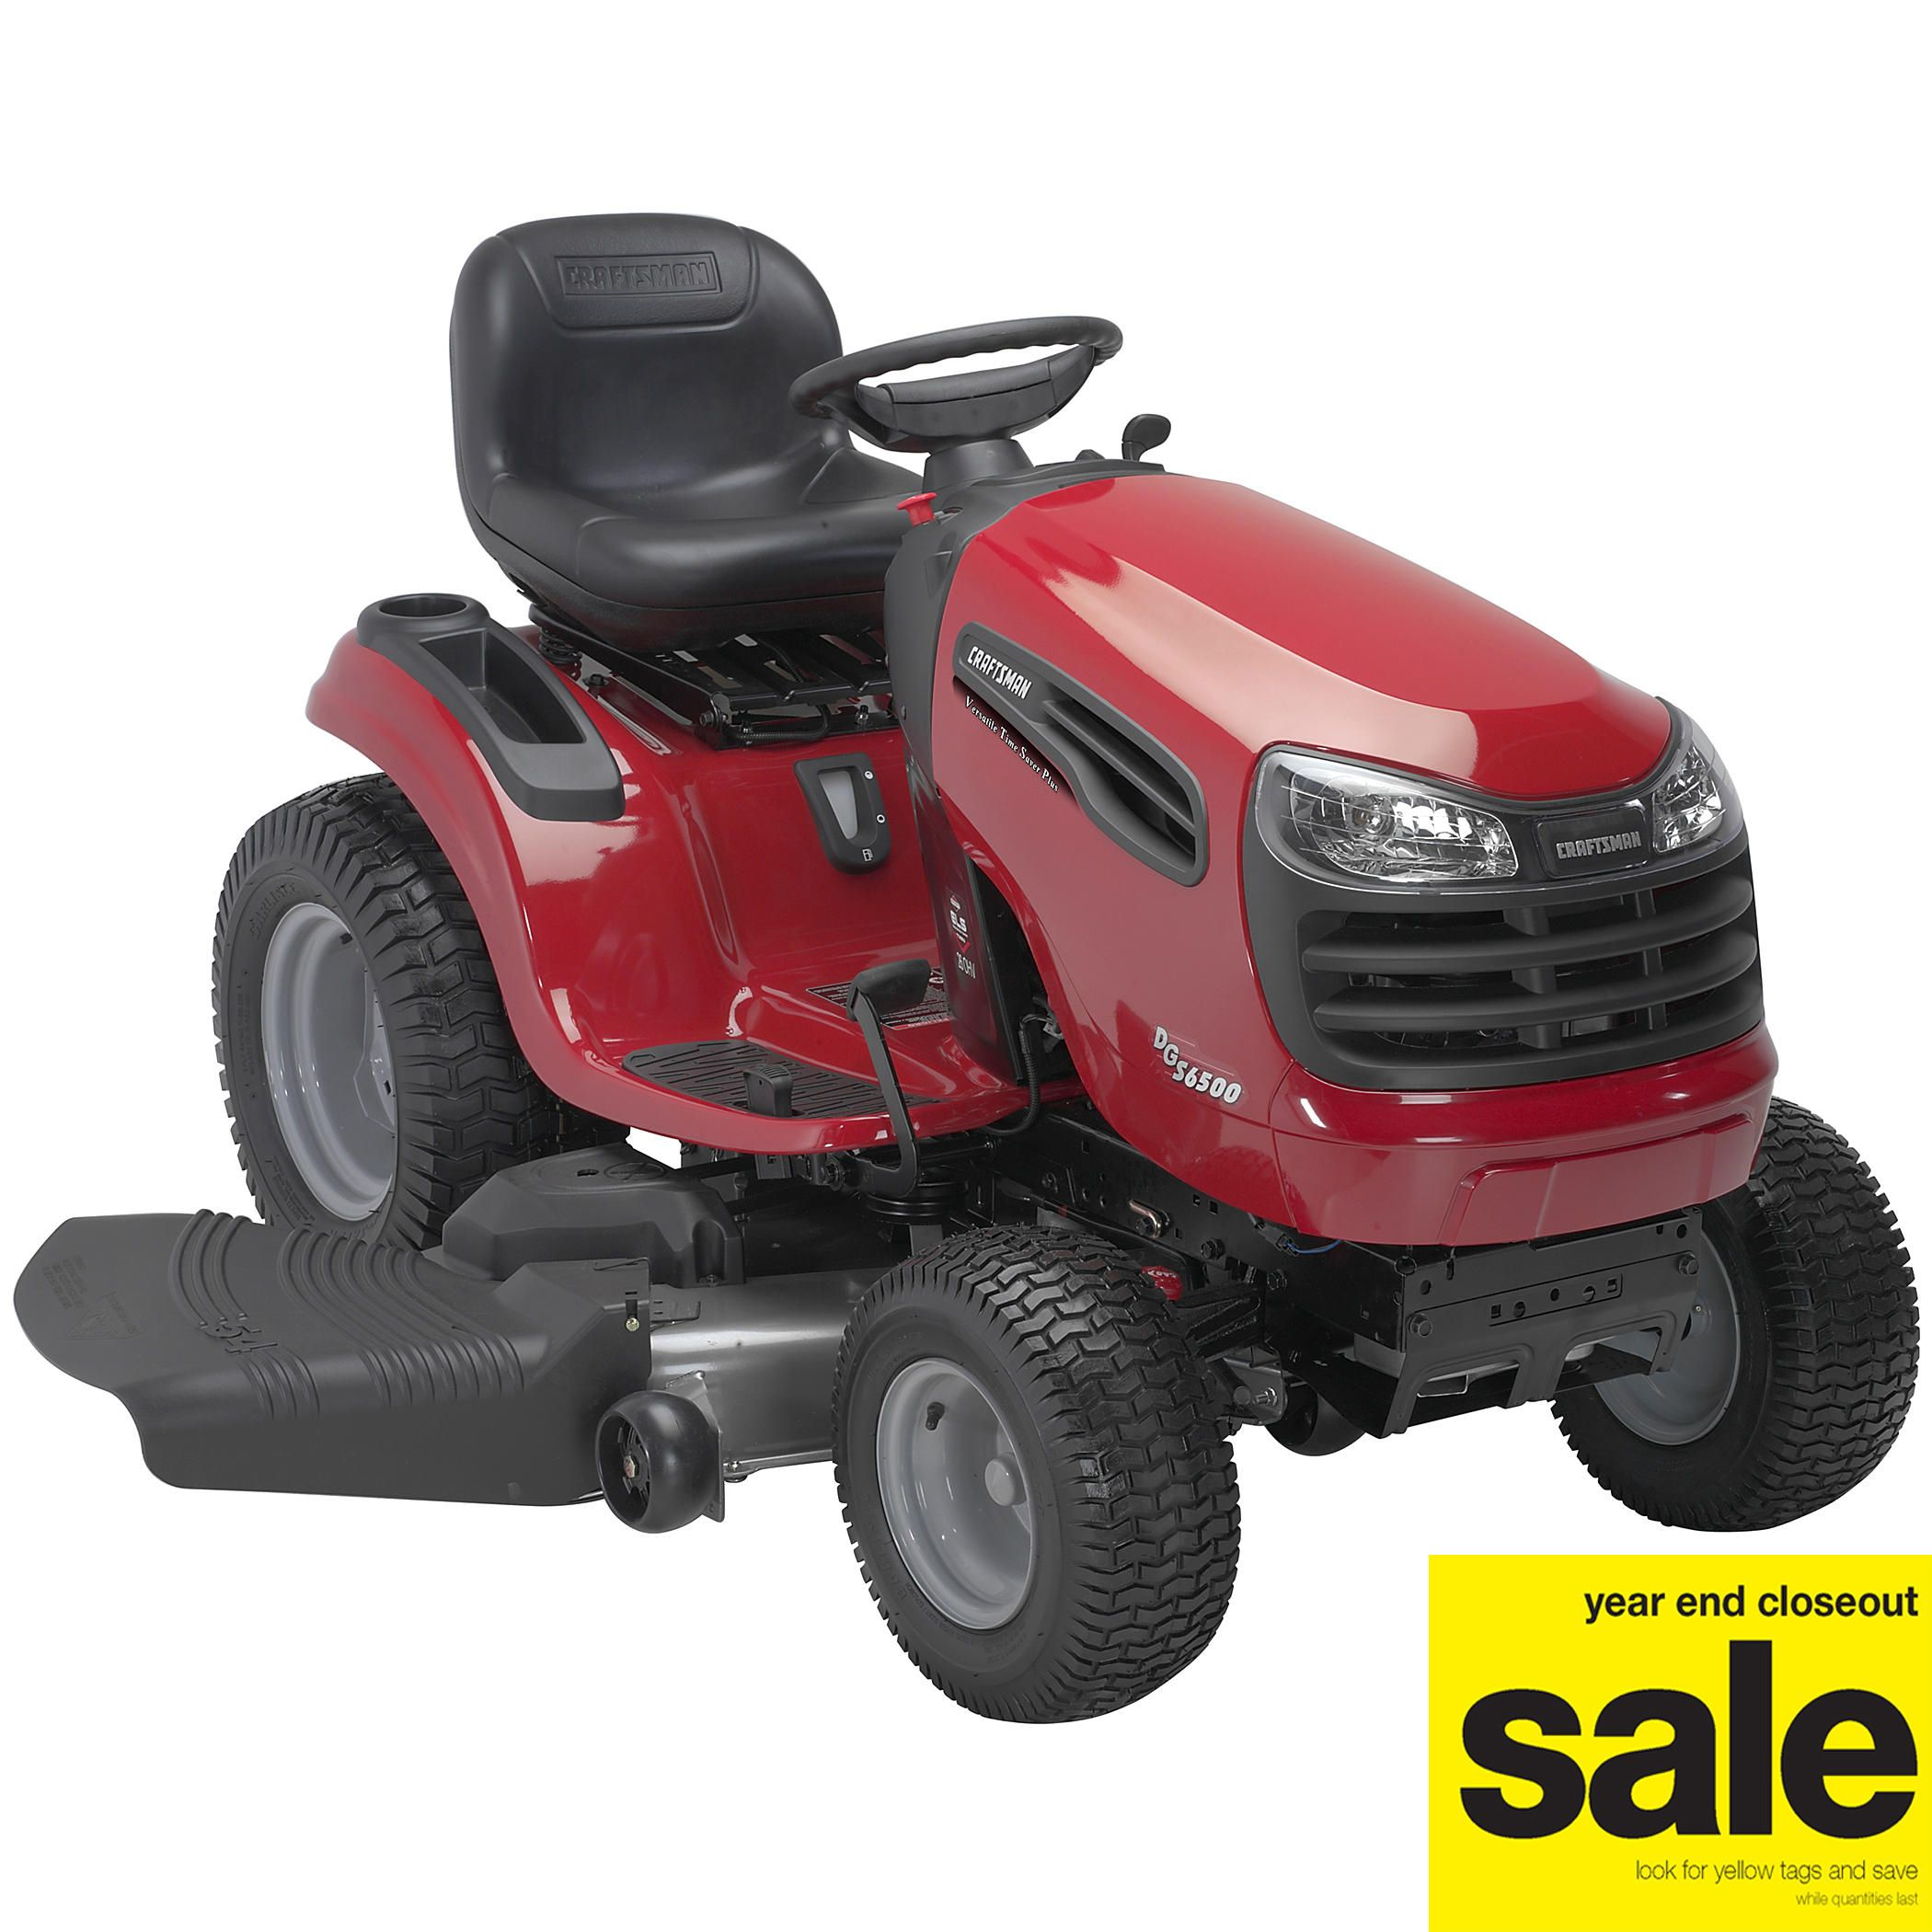 Craftsman 28749 26 Hp 54 In Deck DGS 6500 Garden Tractor